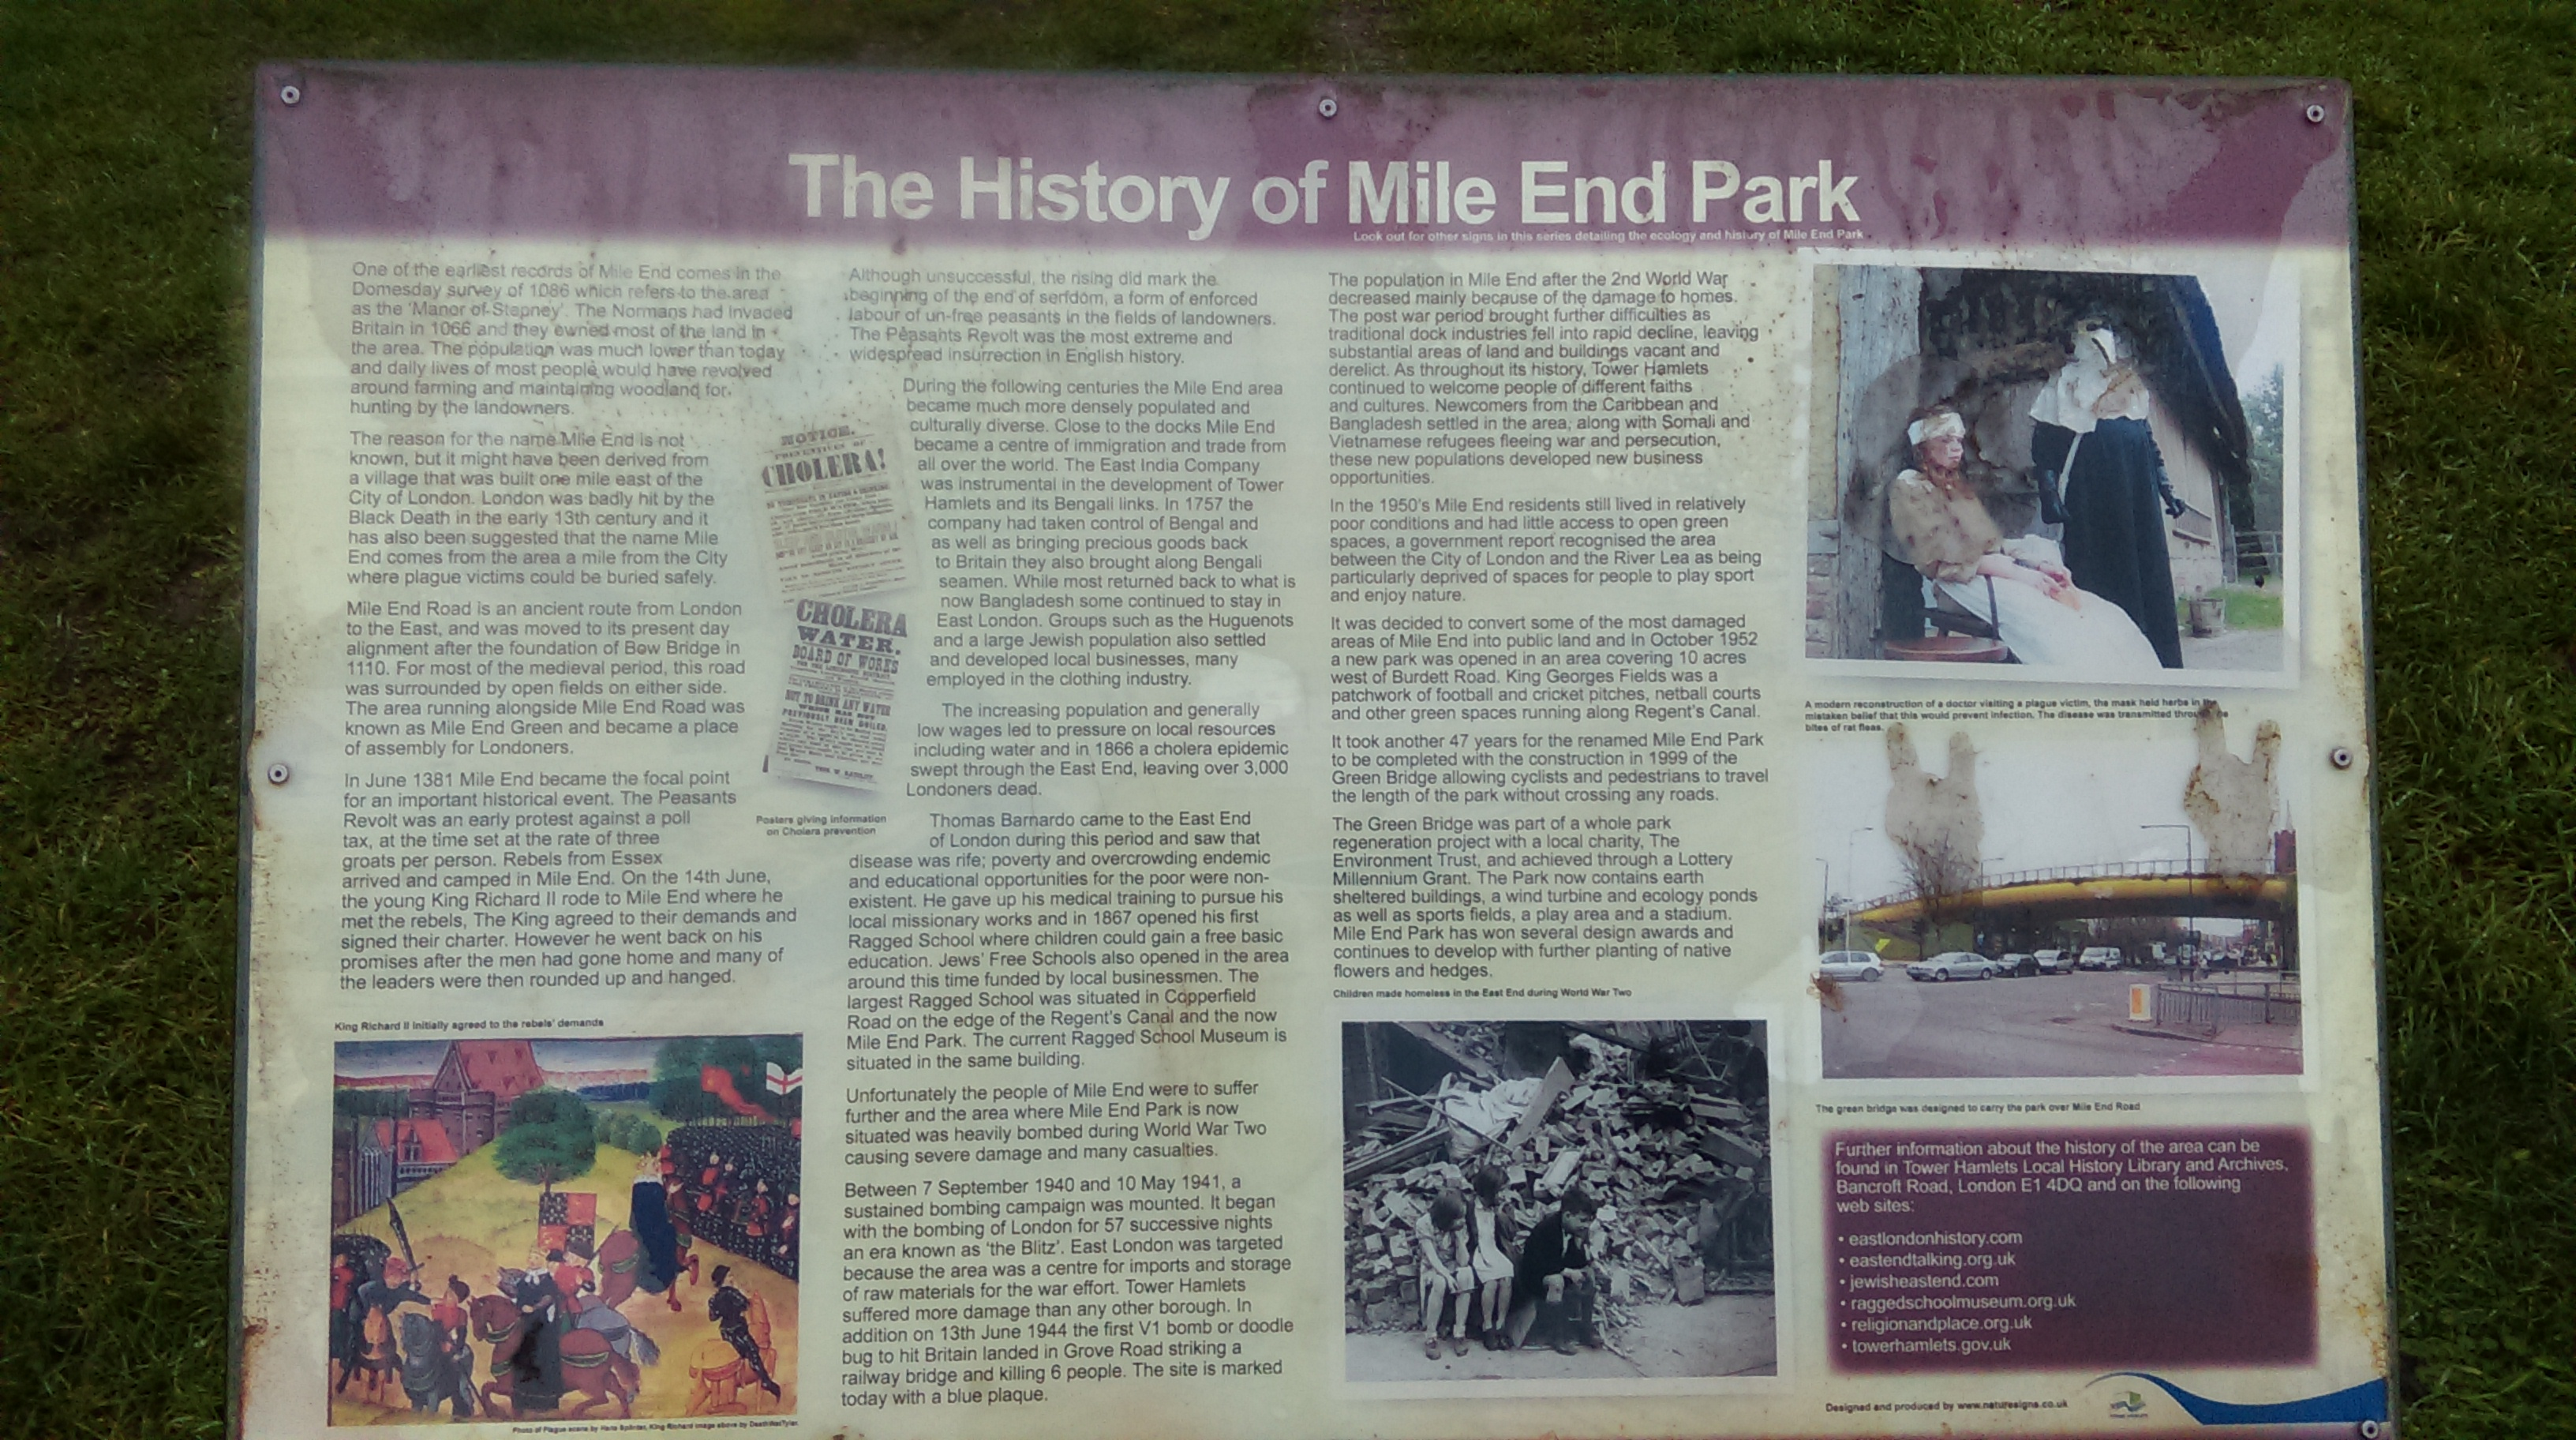 The history of Mile End Park